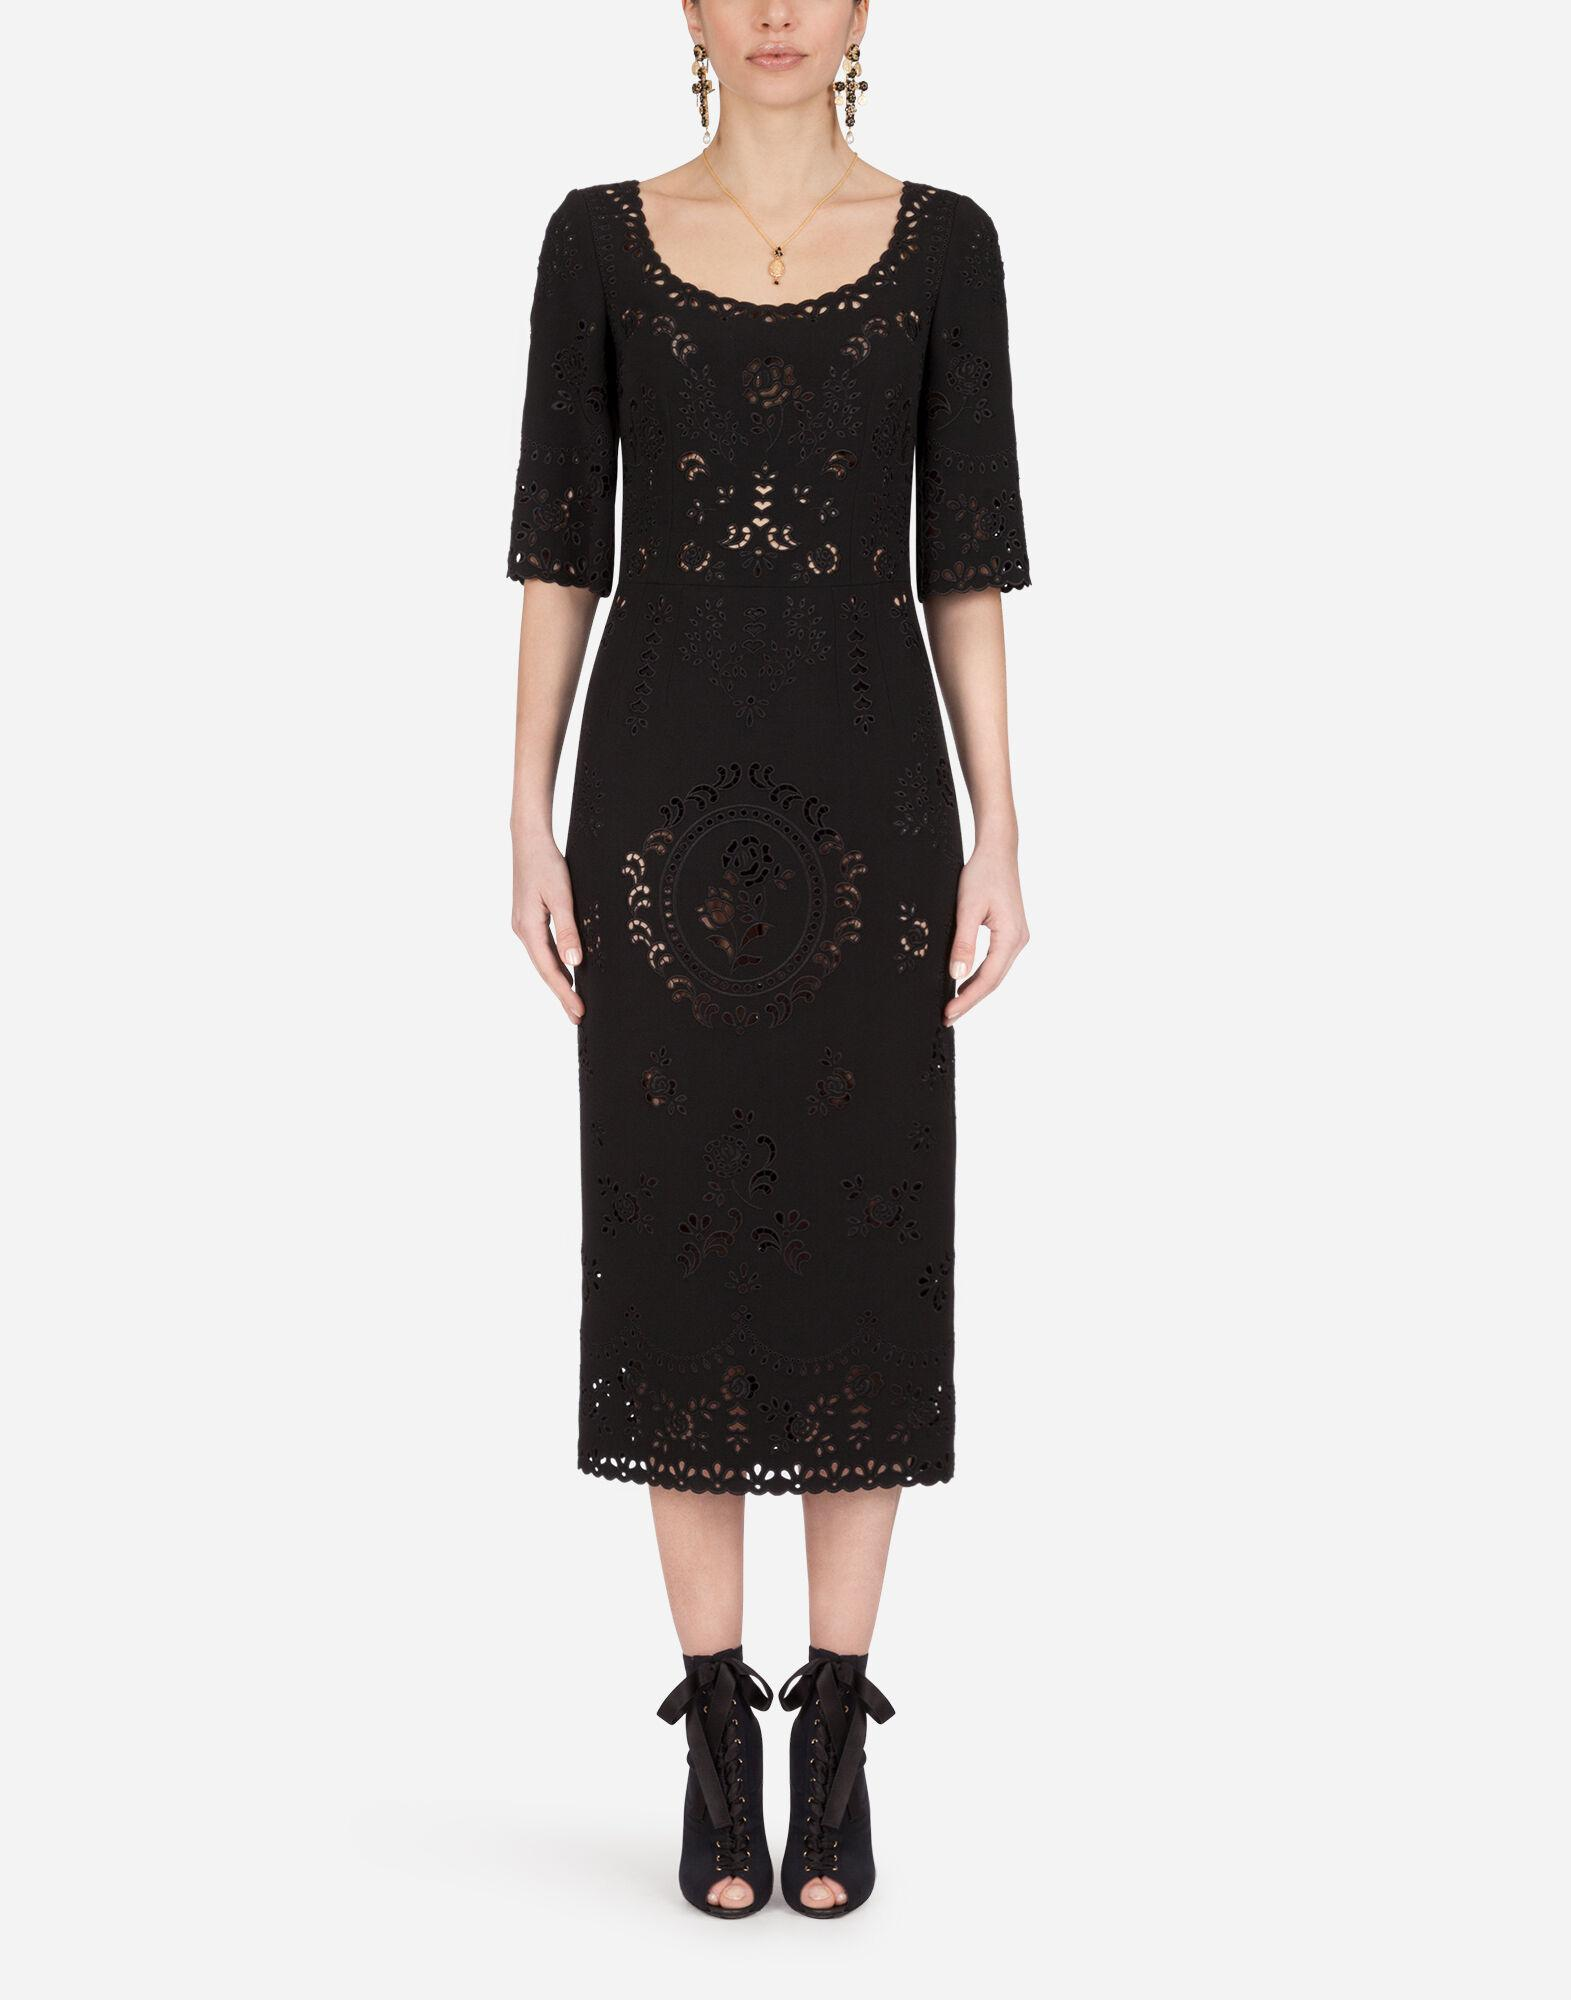 Short-sleeved cady midi dress with intaglio detailing